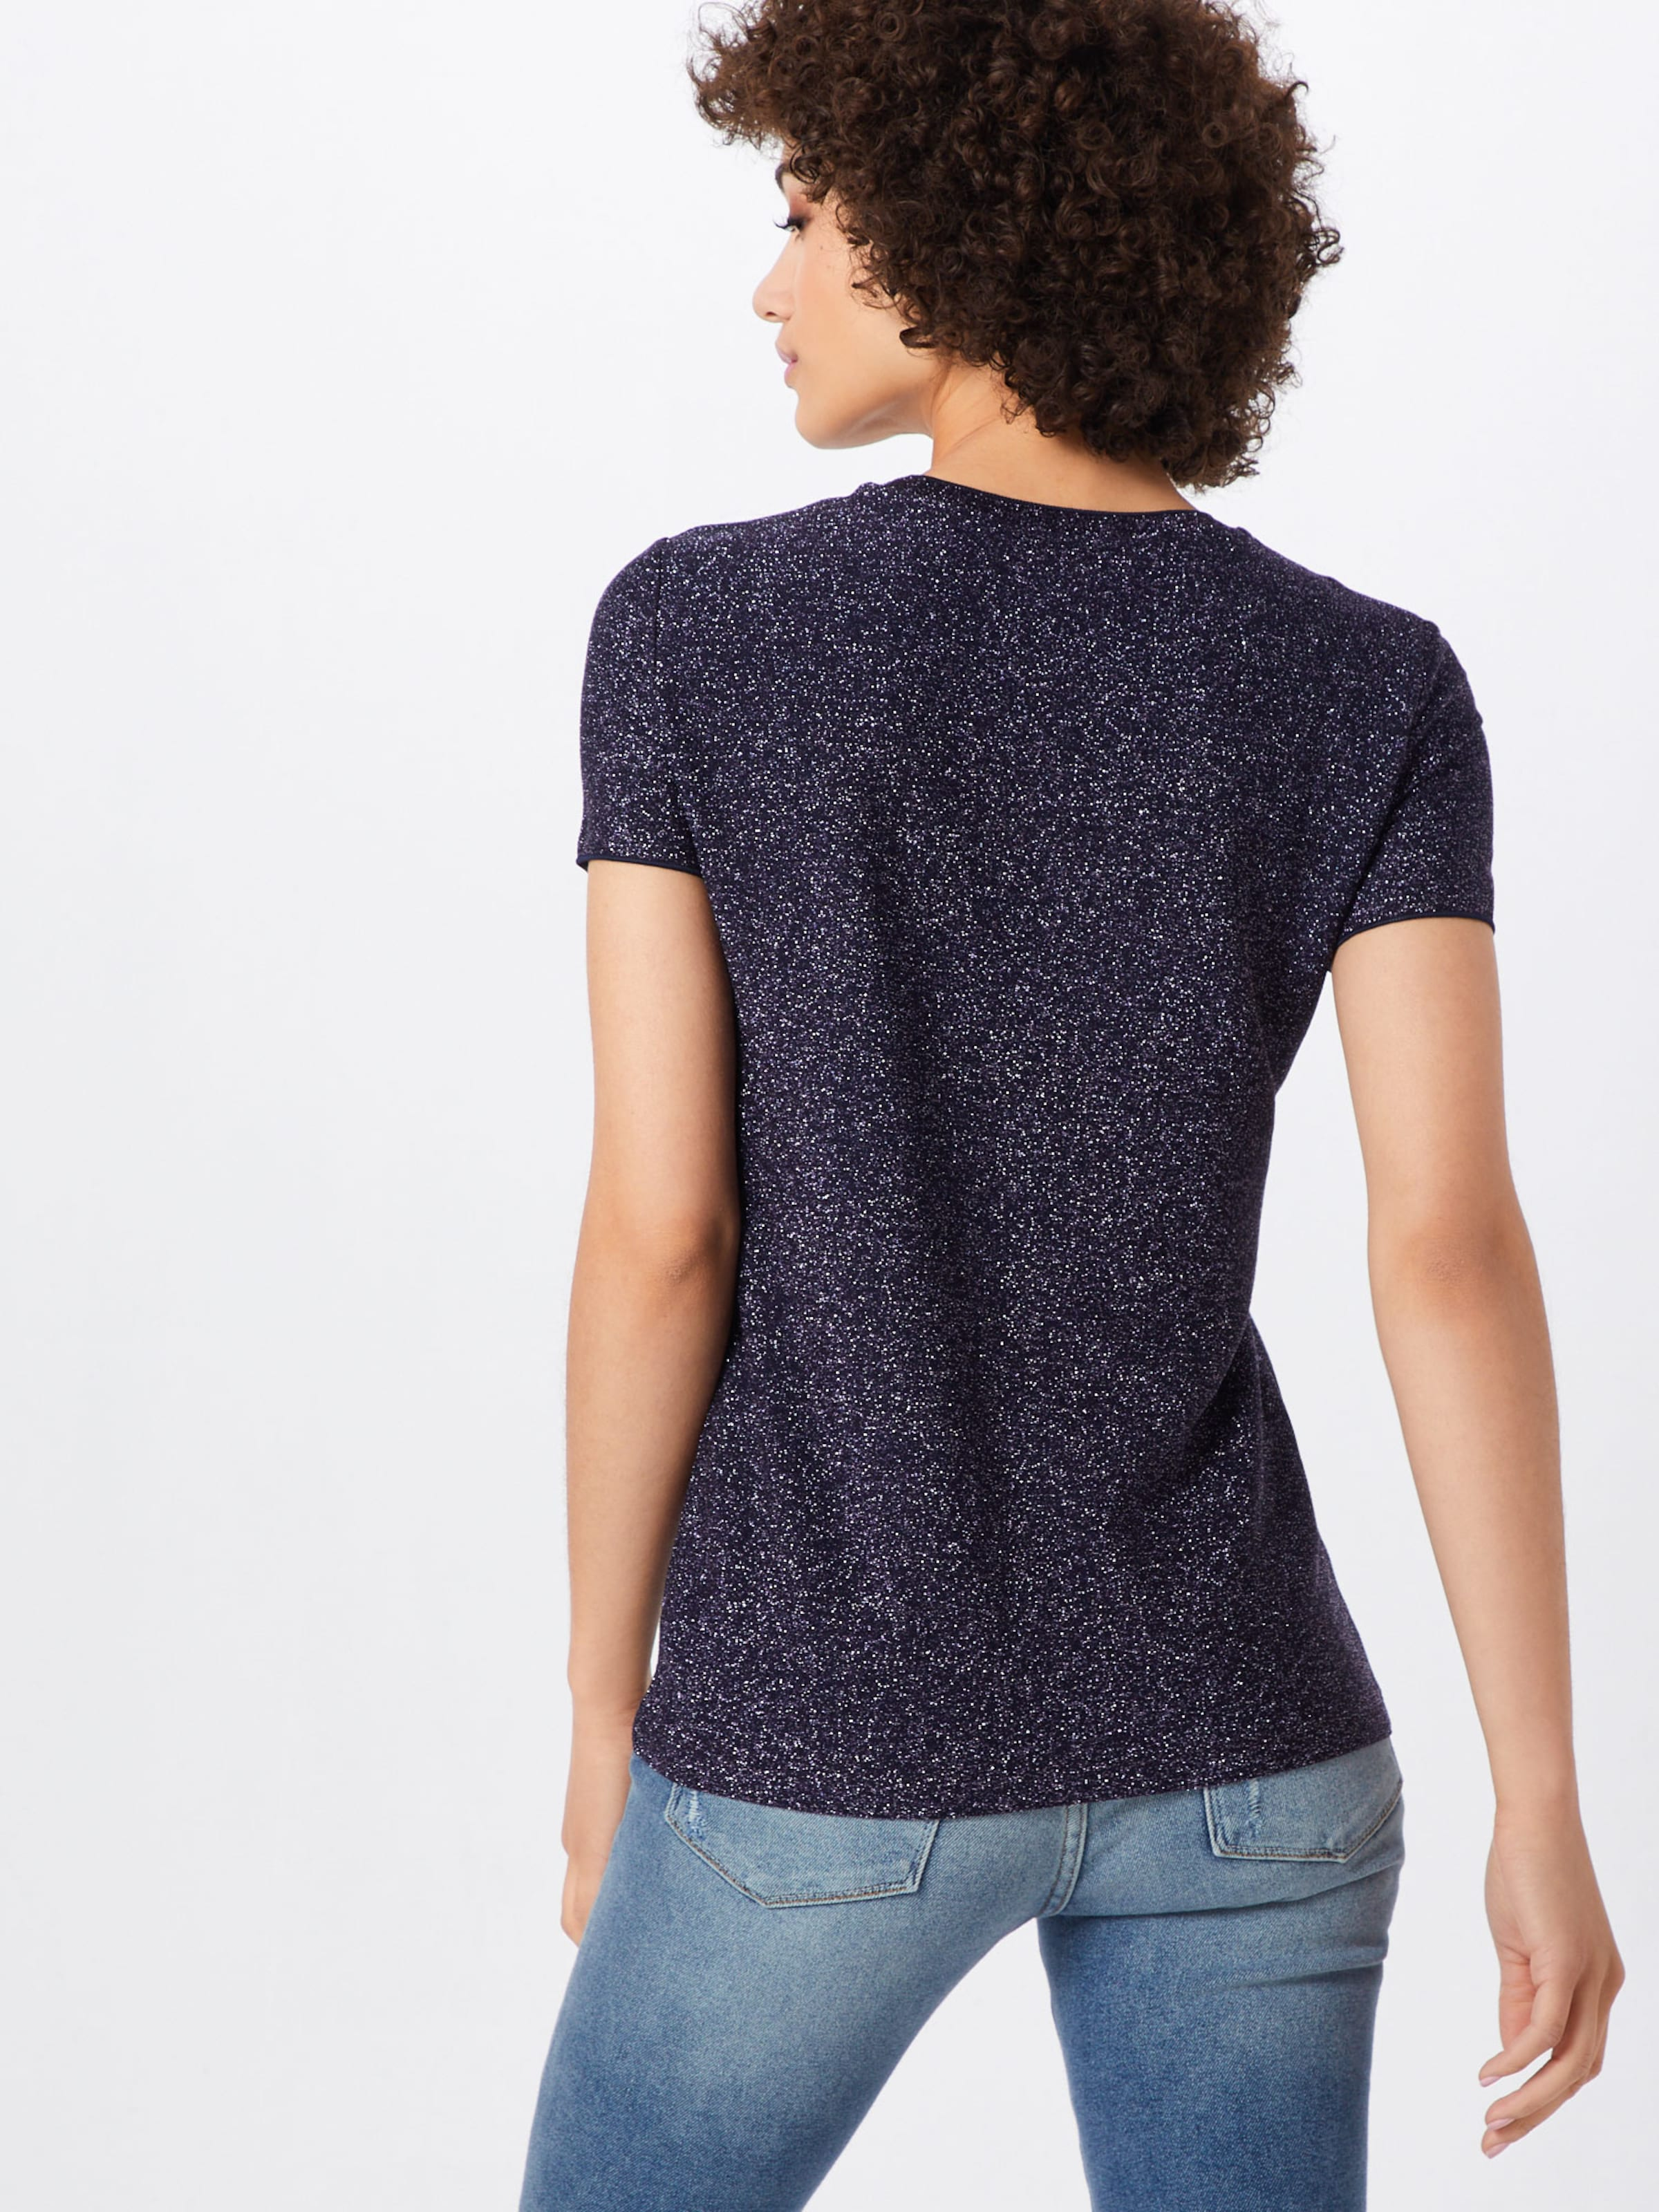 Blau 'damiere' In Max 'damiere' amp;coShirt In Max amp;coShirt Max amp;coShirt In Blau 'damiere' 8wPn0Ok